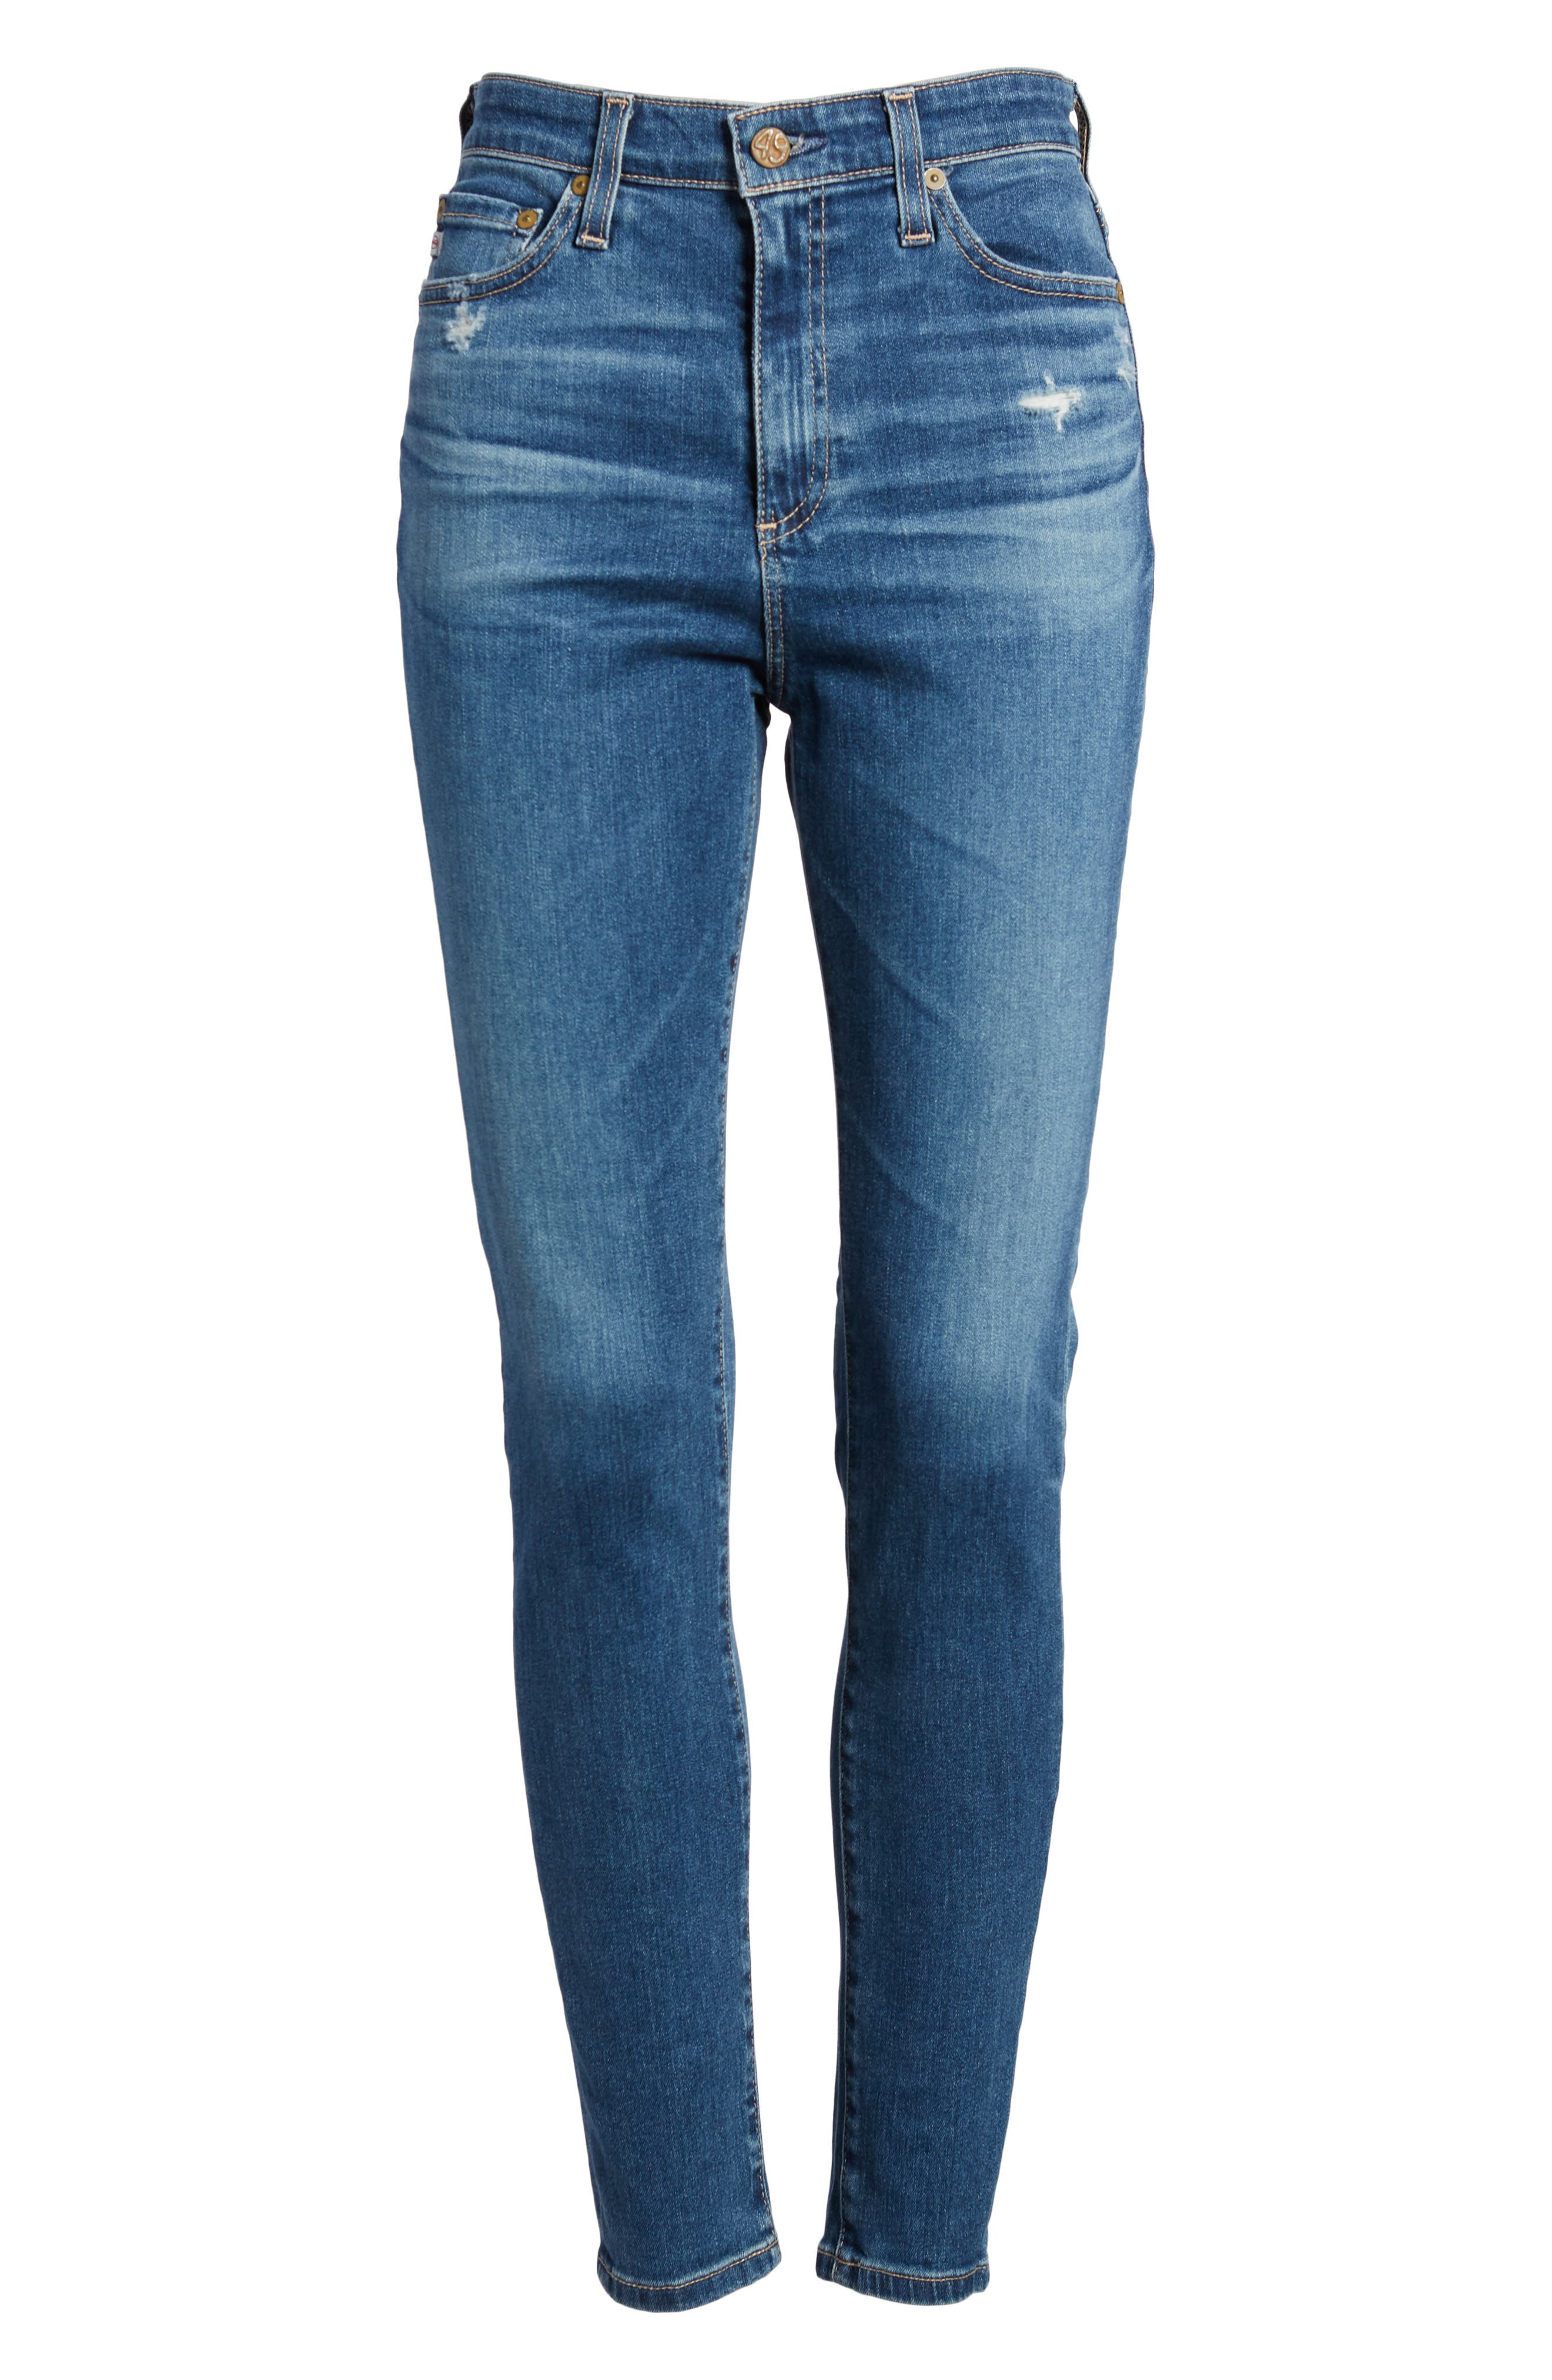 Mila Ankle Skinny Jeans,                             Alternate thumbnail 7, color,                             8 YEARS INFAMY